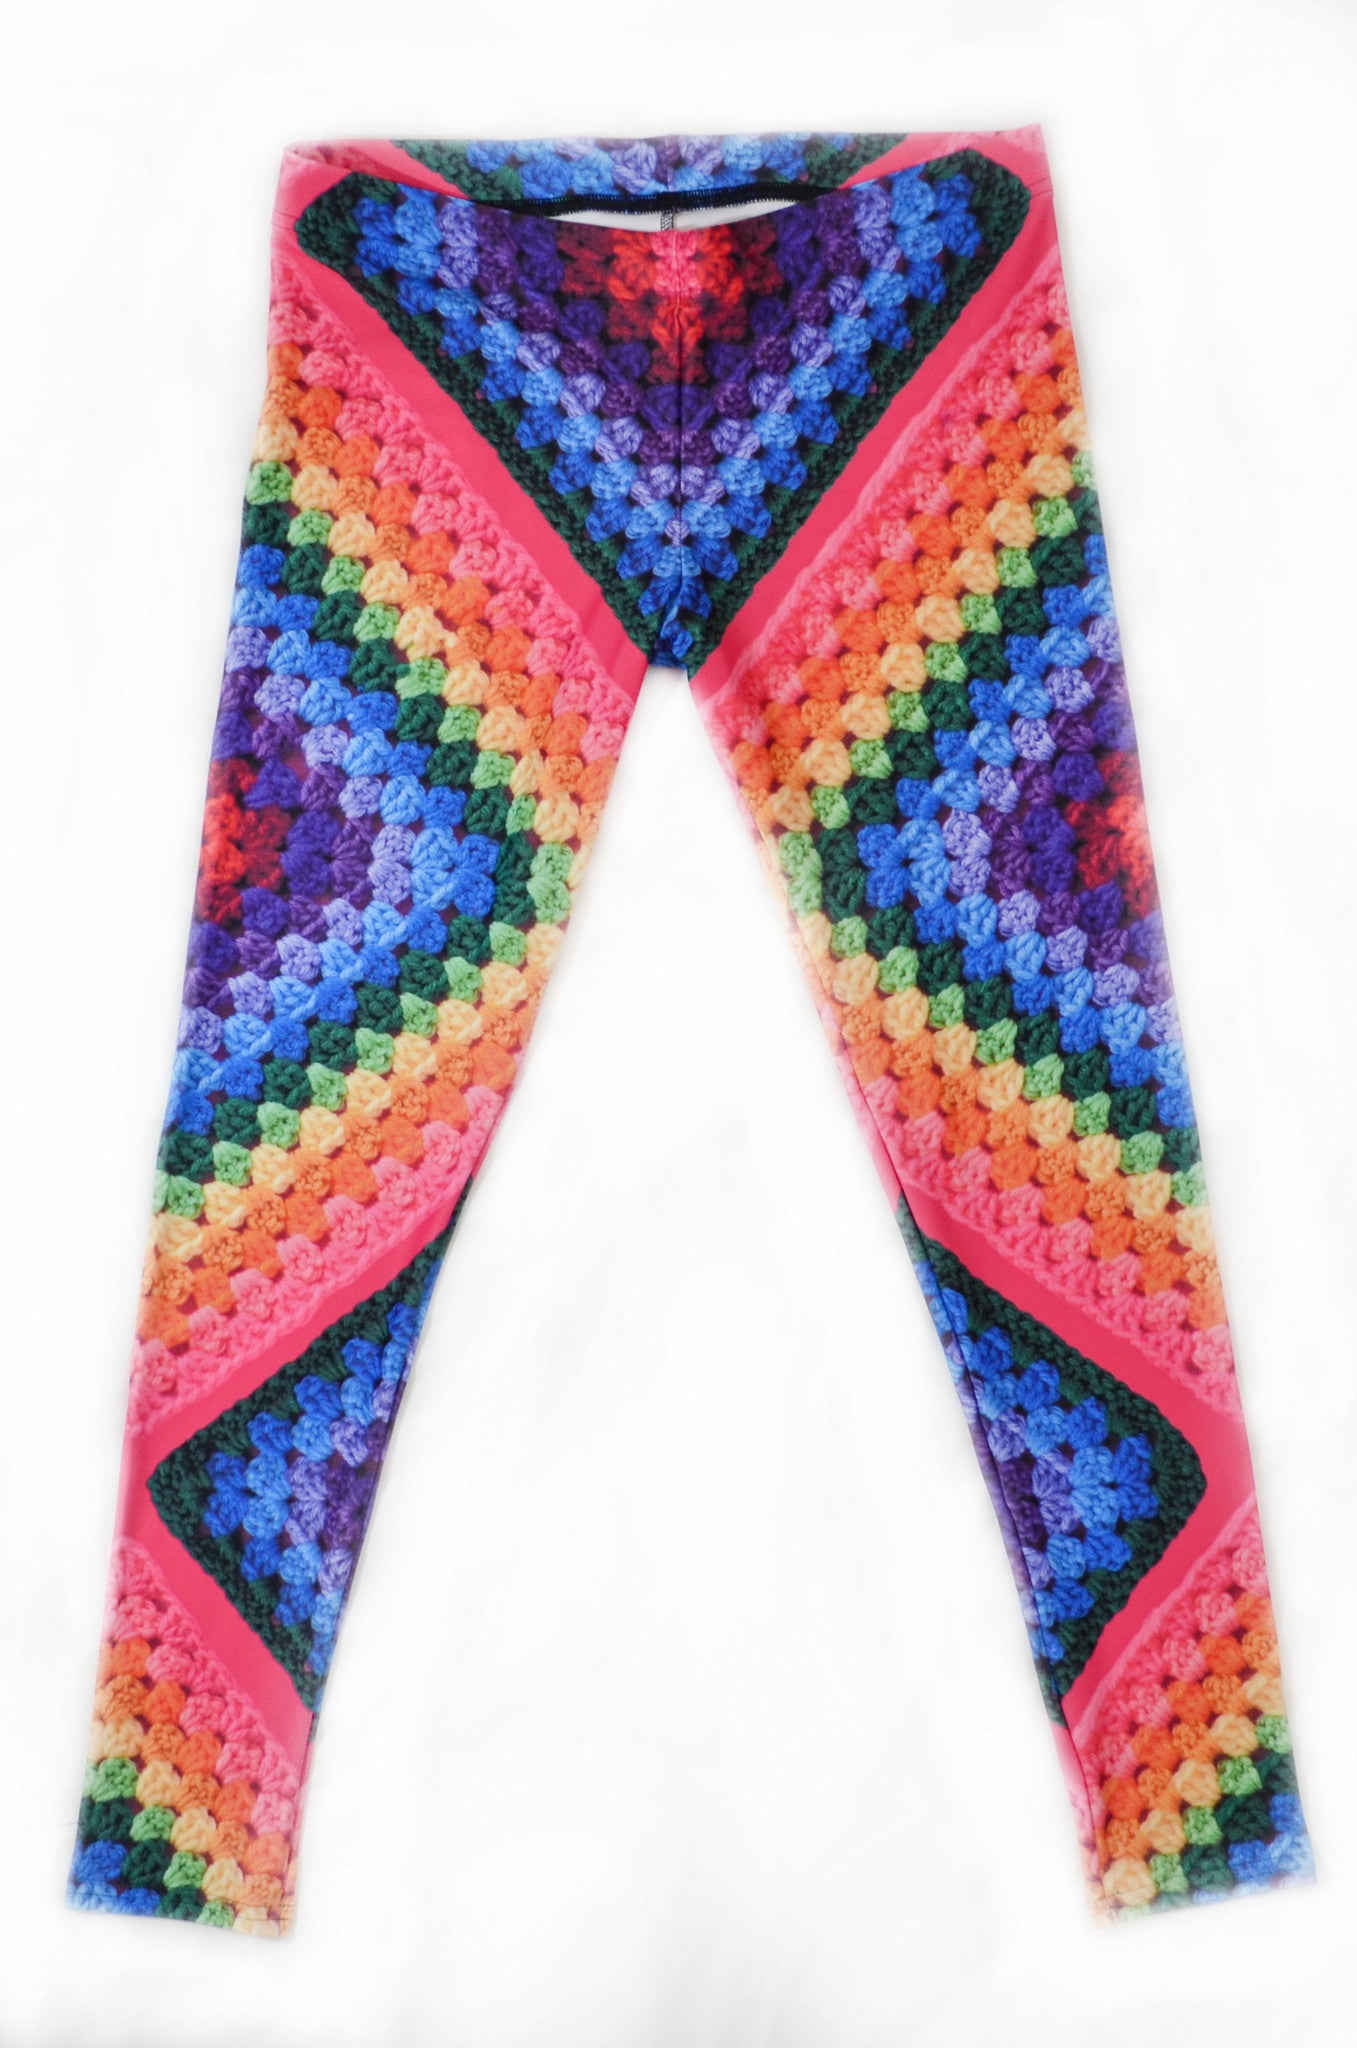 Snapdragon Brand Clothing Granny Square Crochet Print rainbow leggings in style Rainbow Soul features a tie-dye hippie boho feel and a rainbow of colors. Made of comfortable spandex.